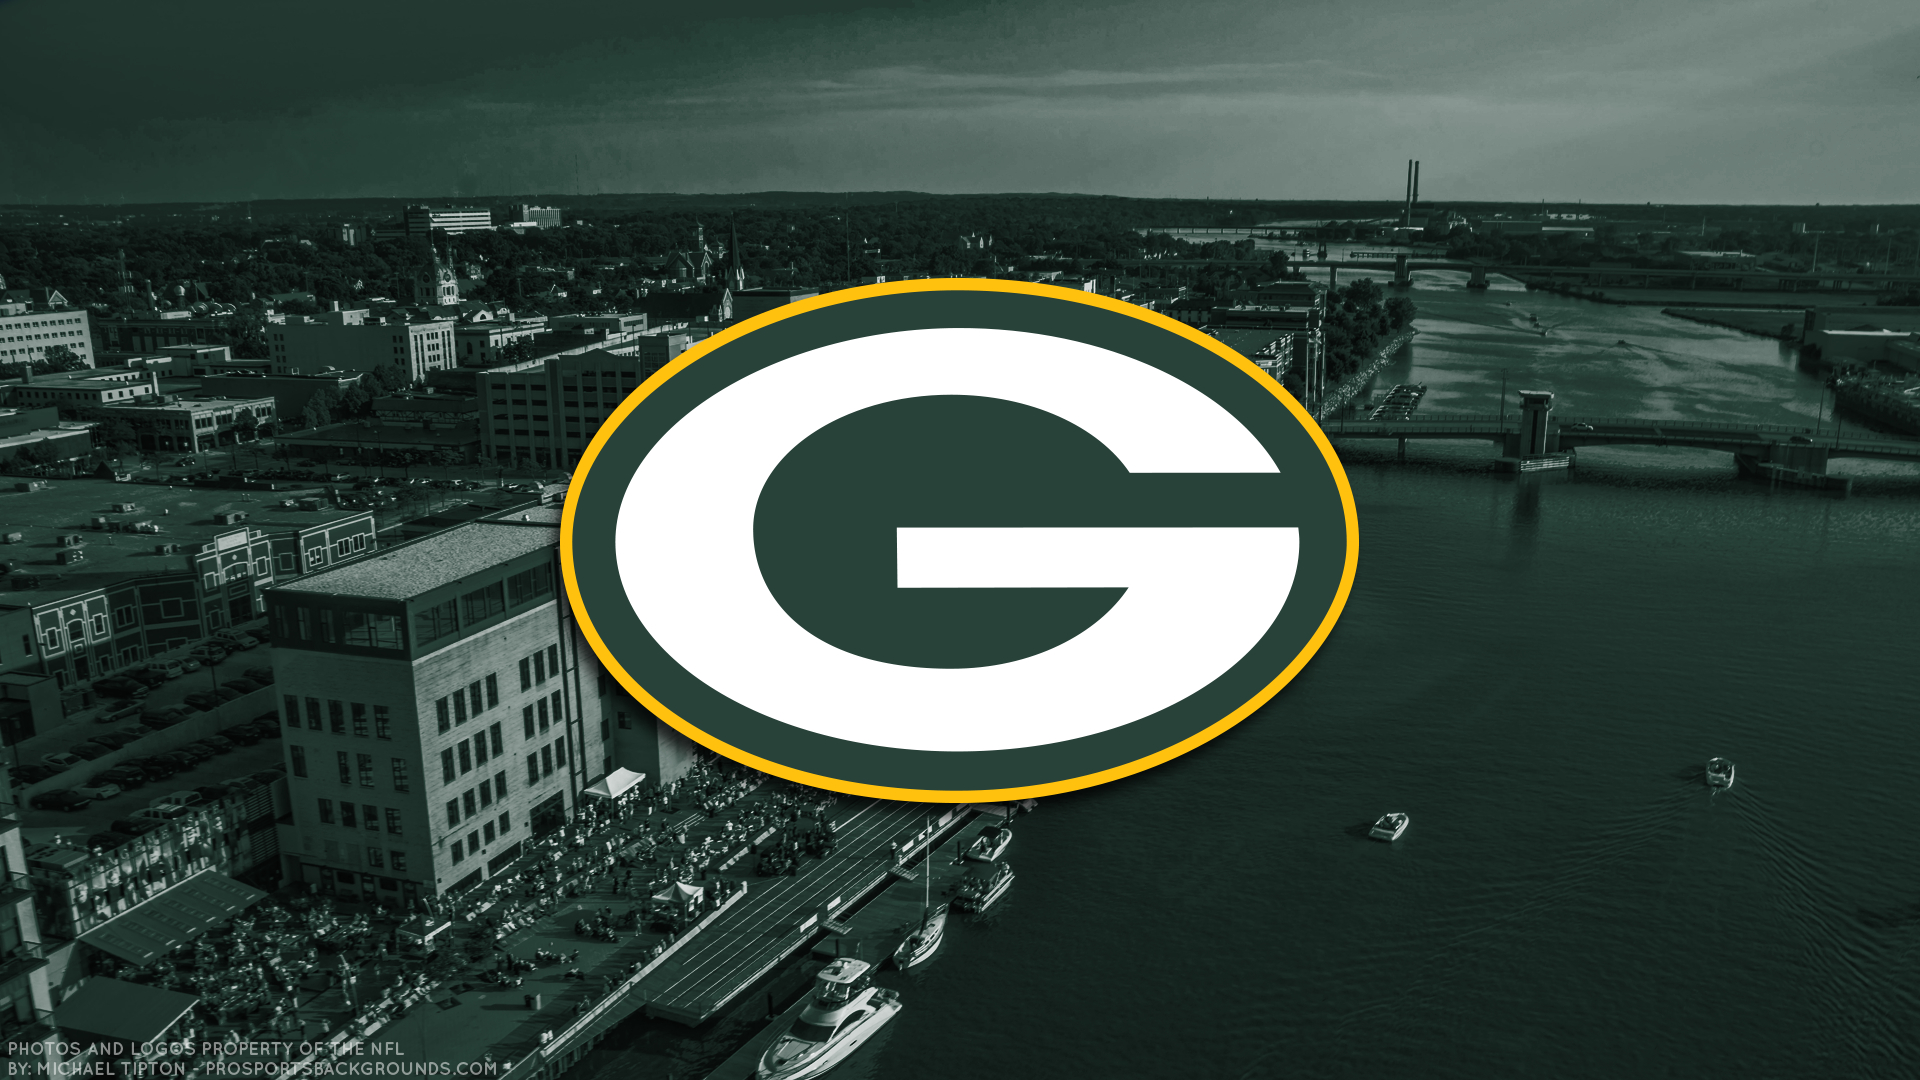 2018 Green Bay Packers Wallpapers - Pc |Iphone| Android - Free Printable Green Bay Packers Logo